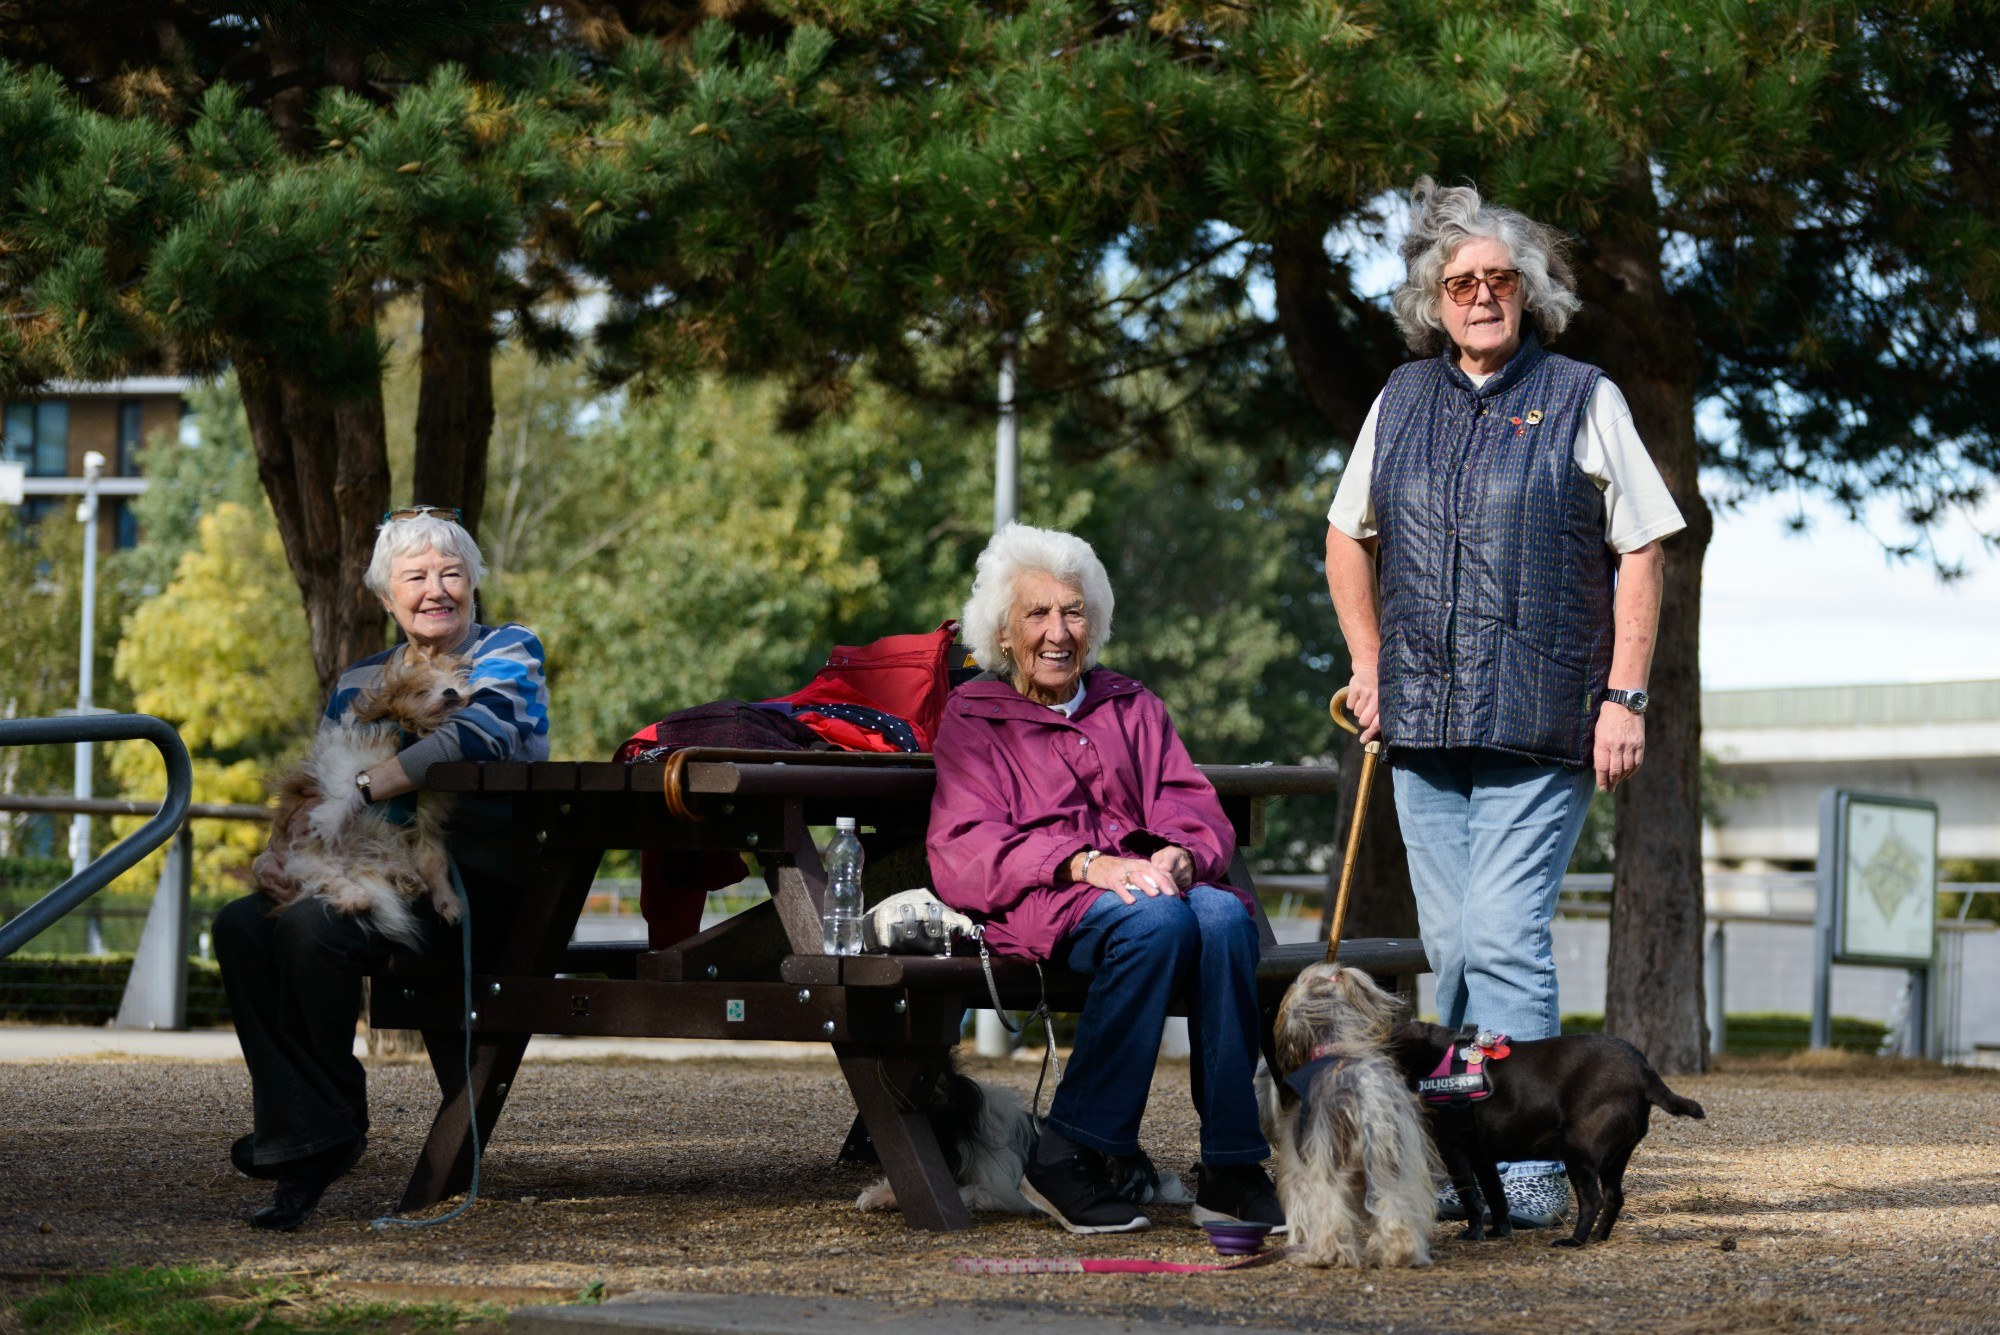 Portrait of three older women outside with dogs